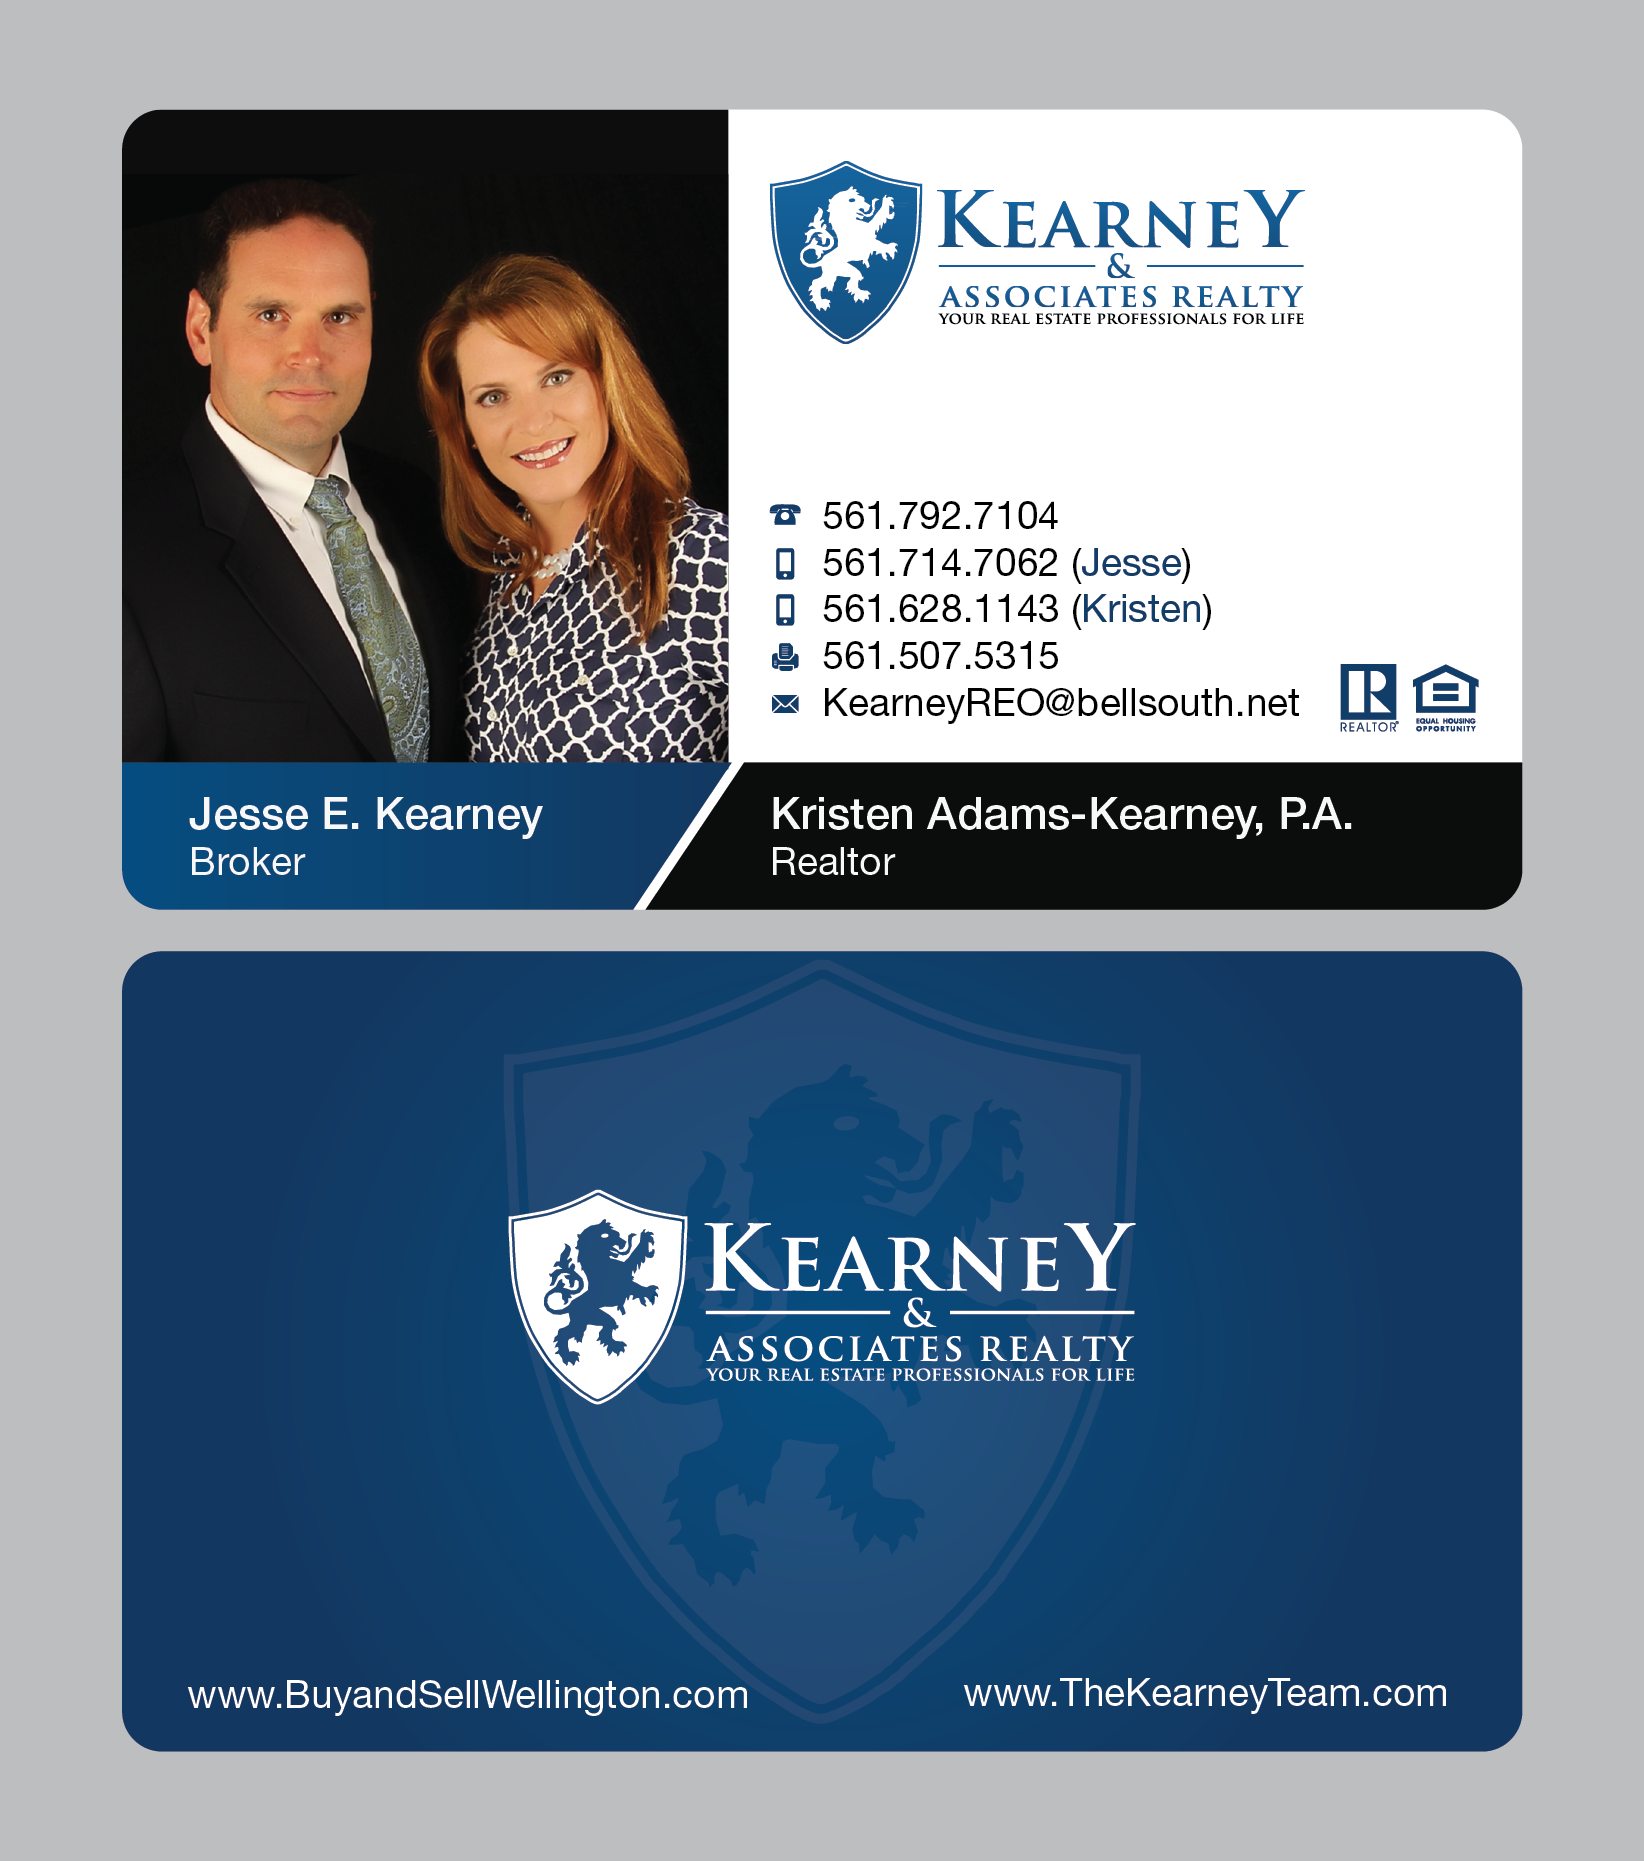 Kearney & Associates Business Cards